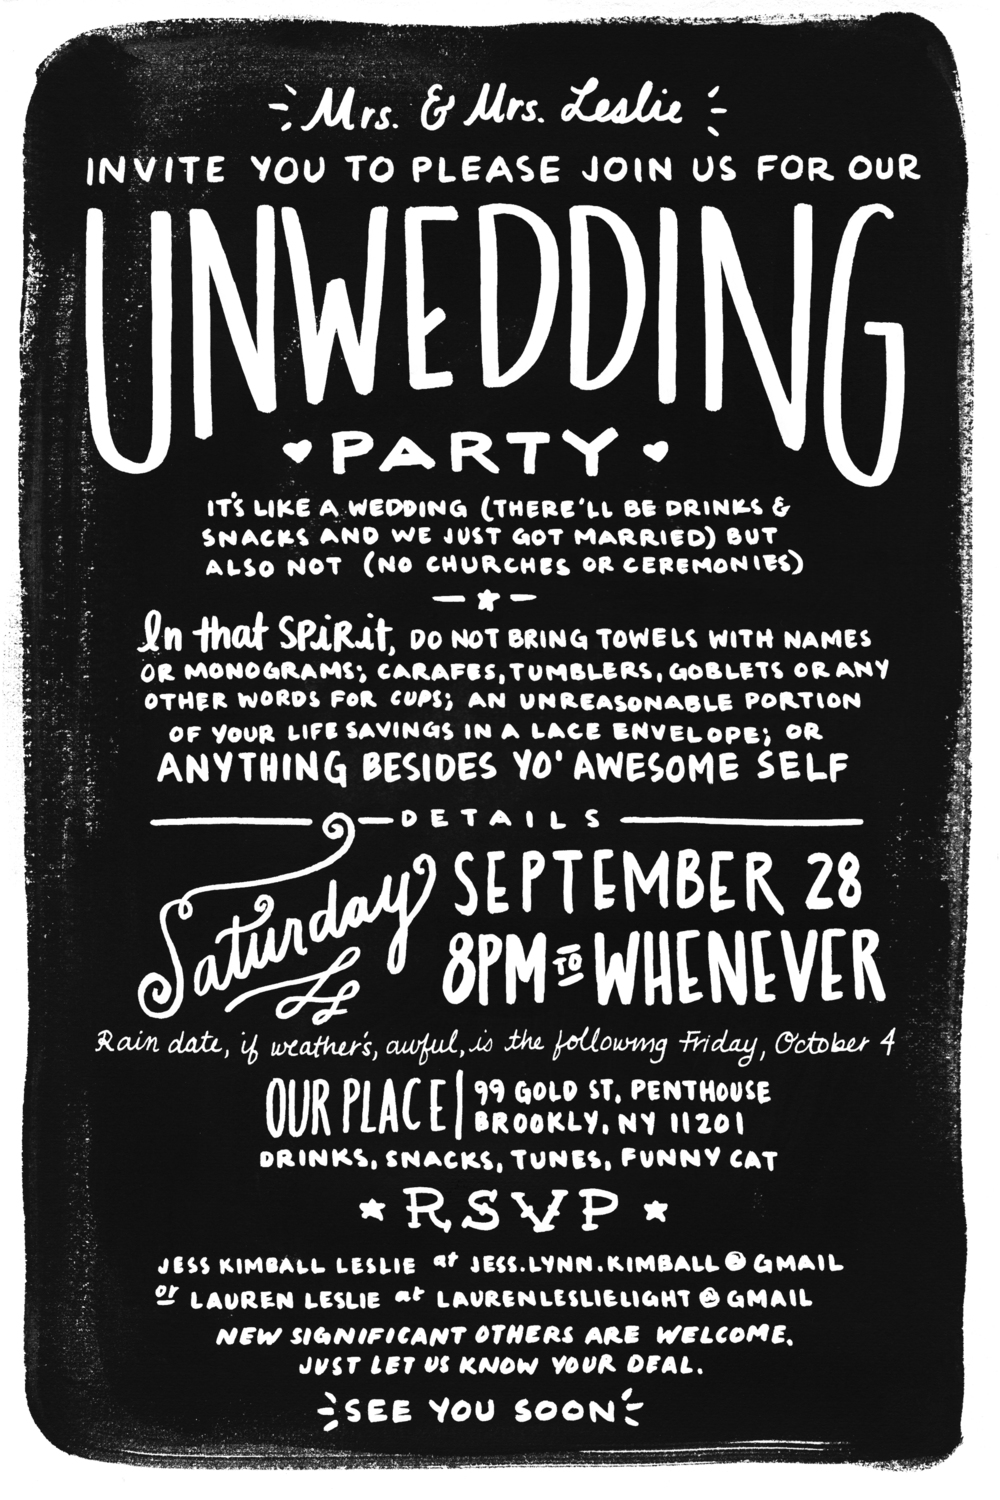 Invitation to an Unwedding